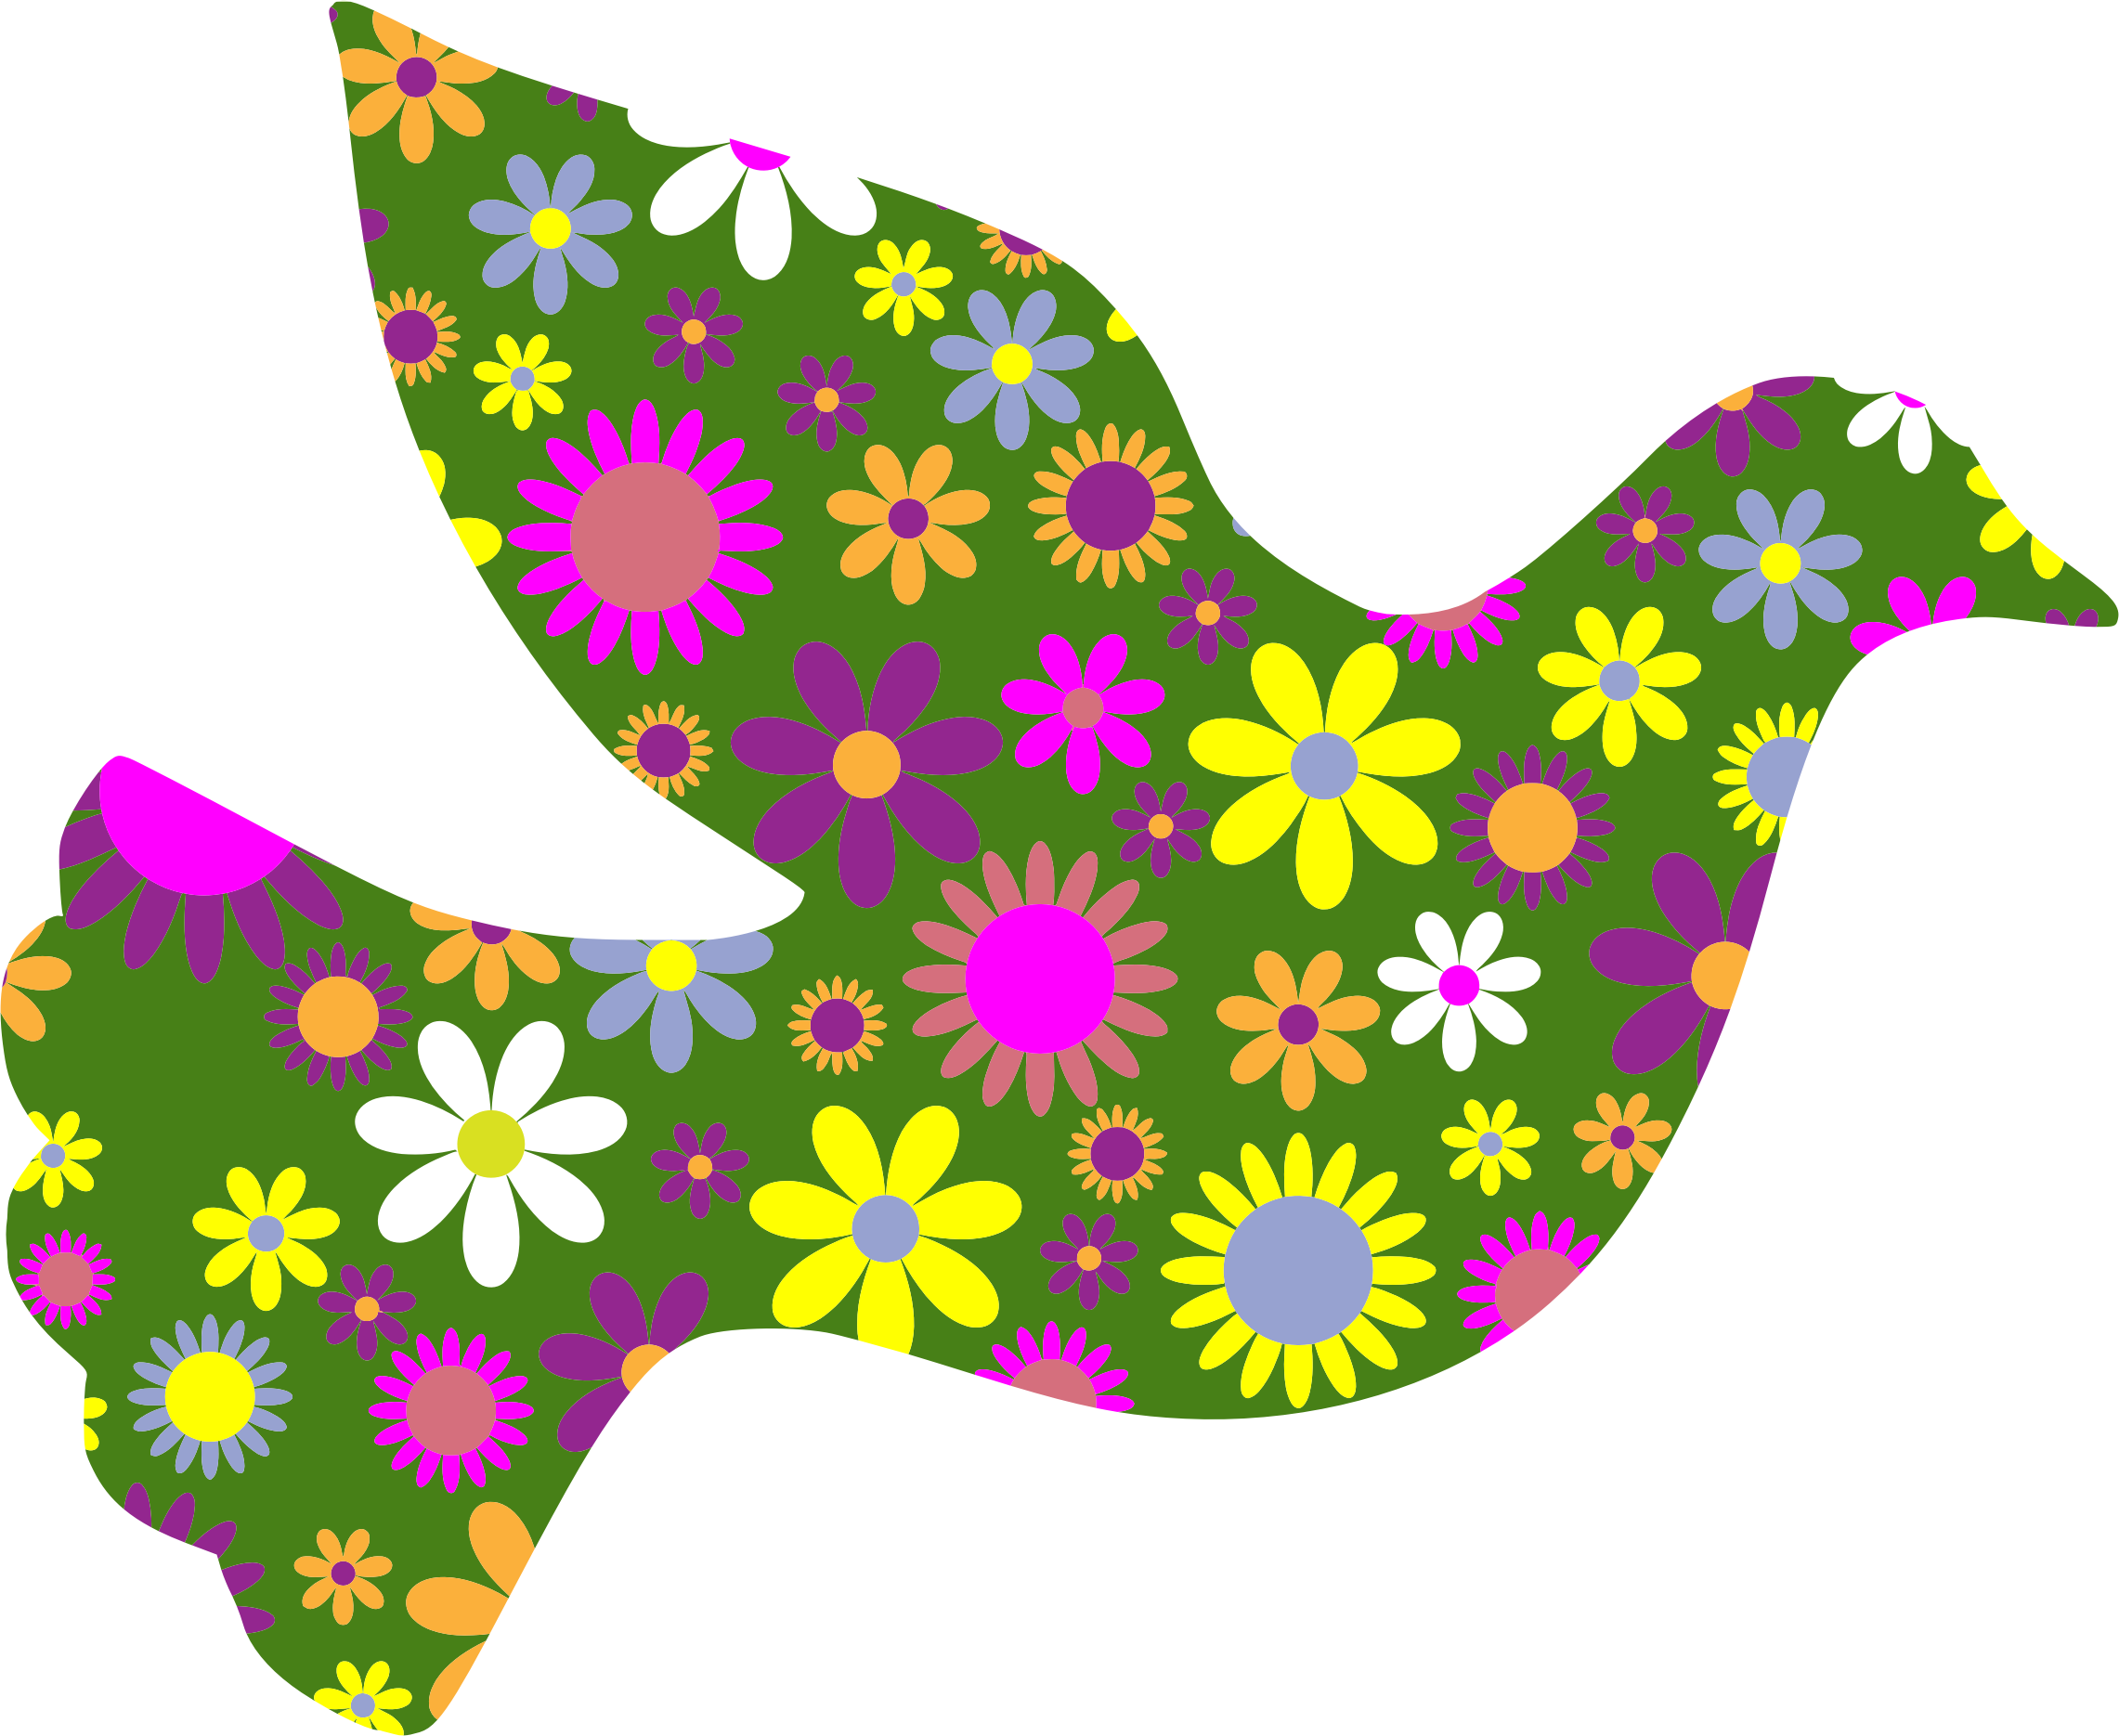 Retro floral peace dove. Trust clipart academic advisor